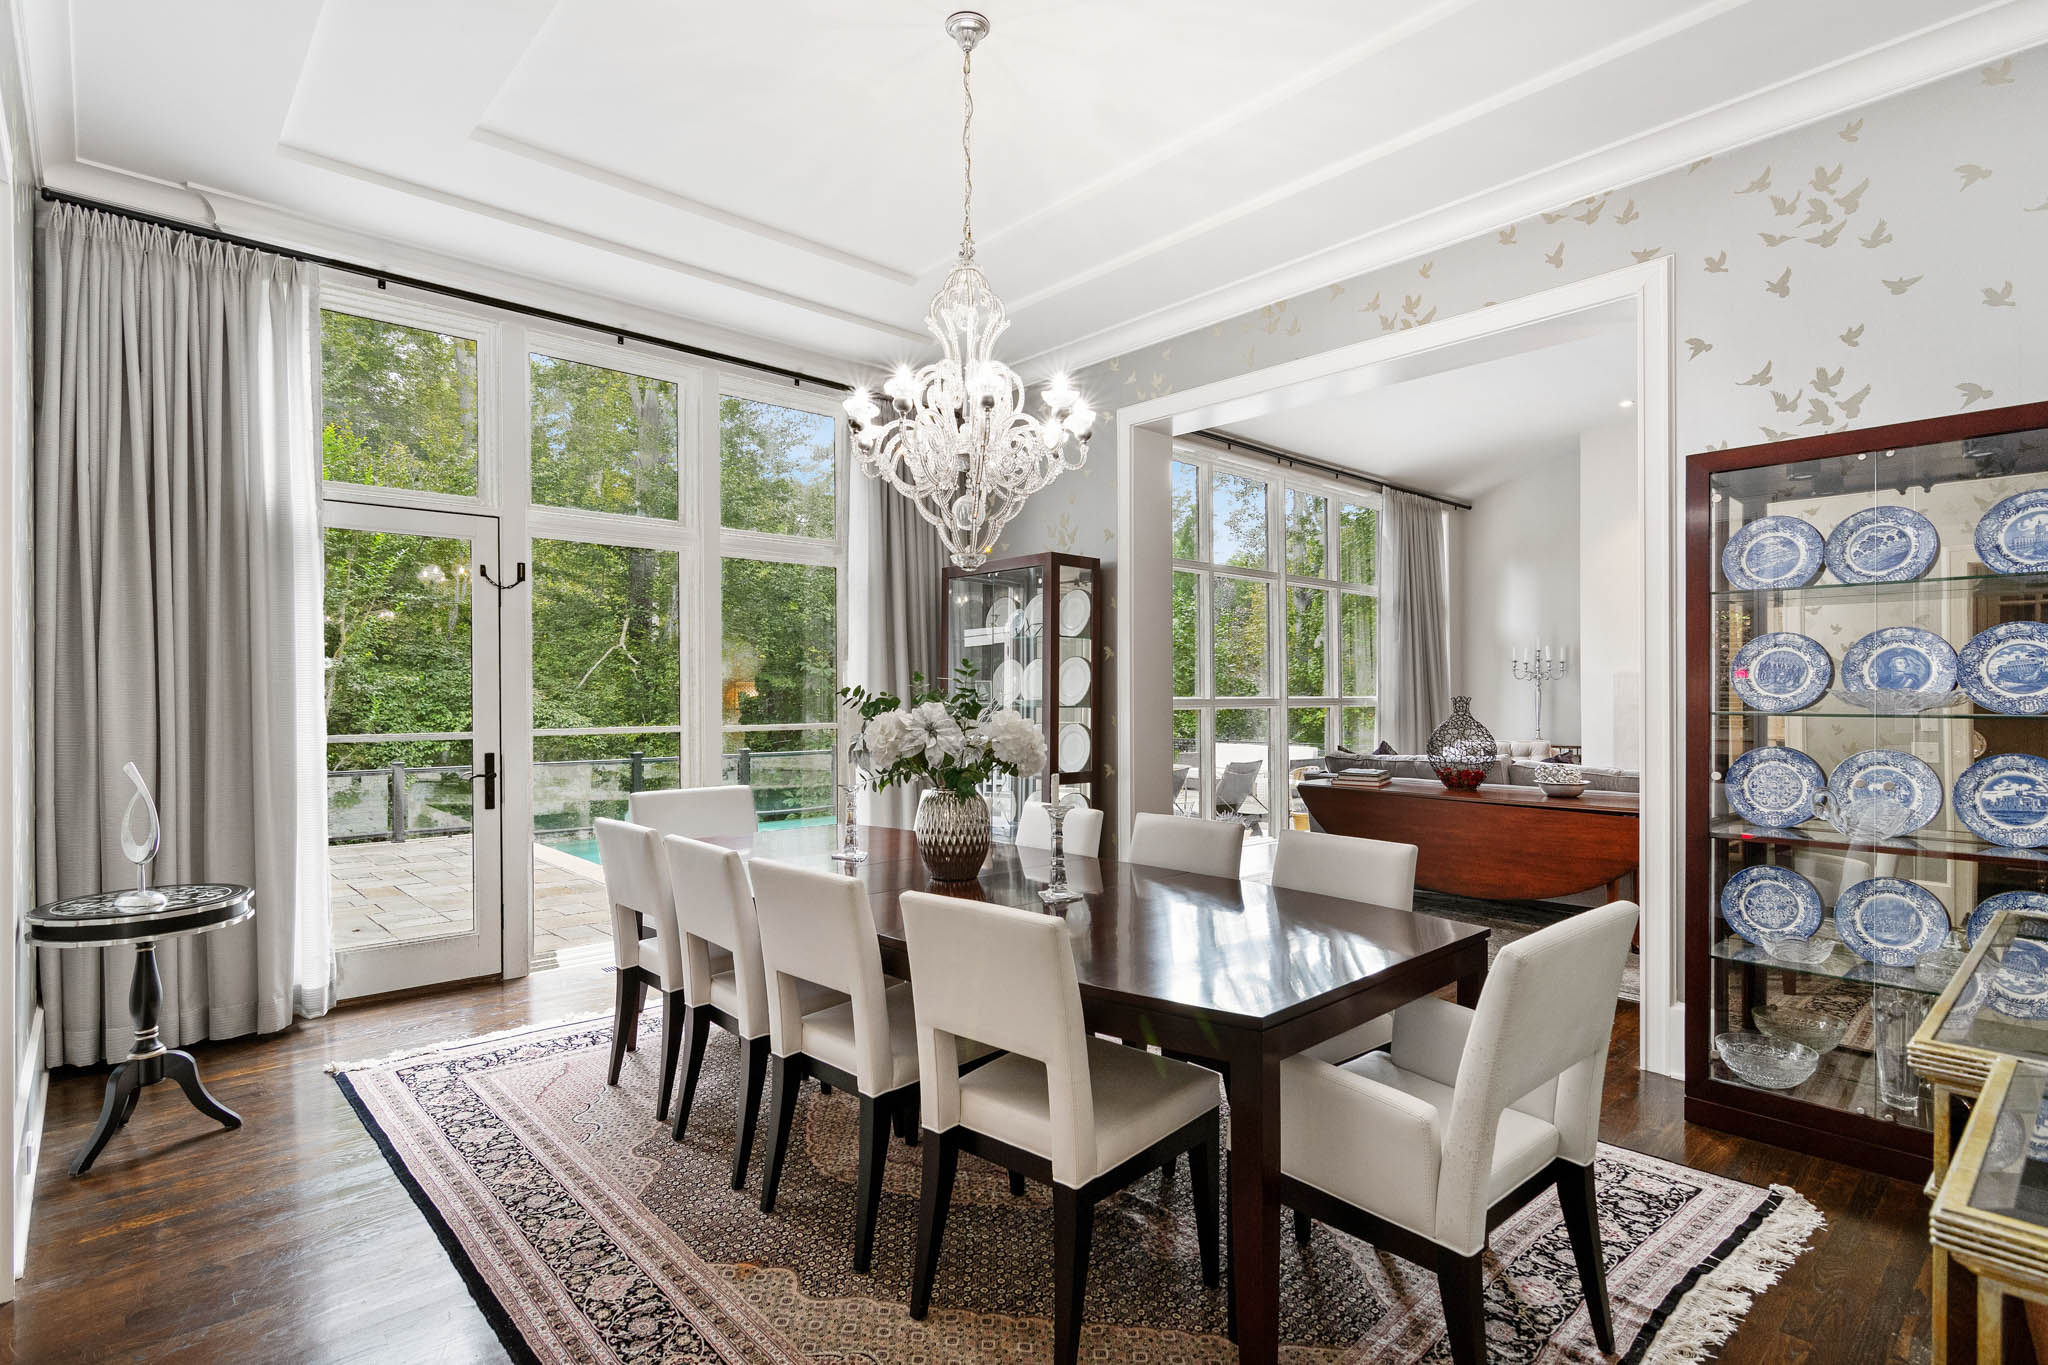 real_estate_photographer_dining_room_photography-1.jpg